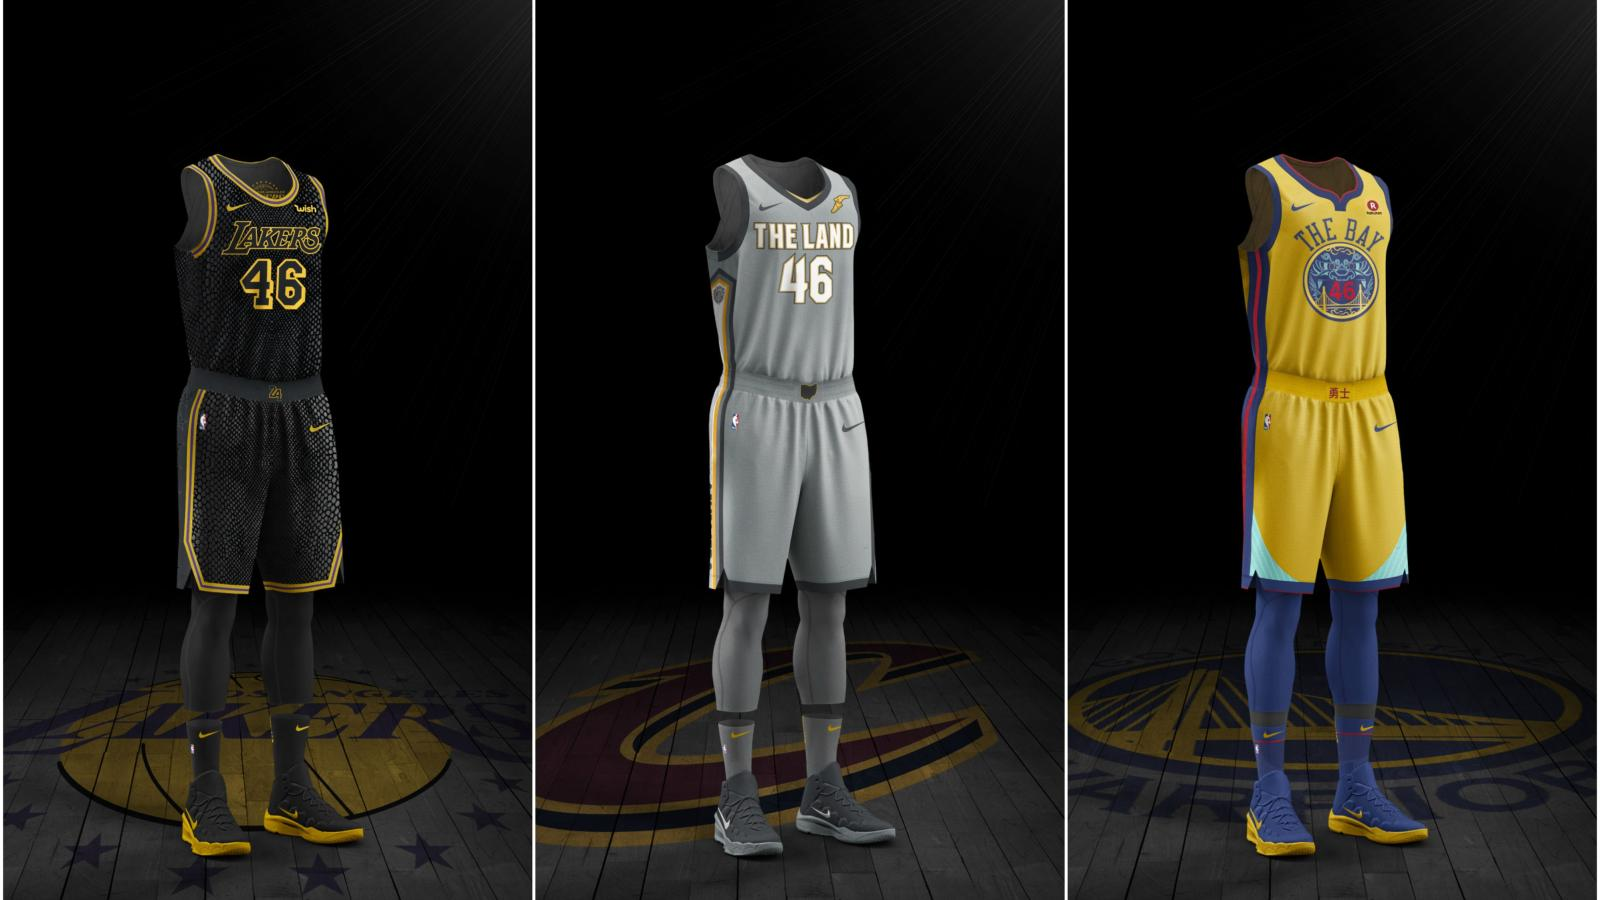 Nike's NBA City Edition jerseys: What